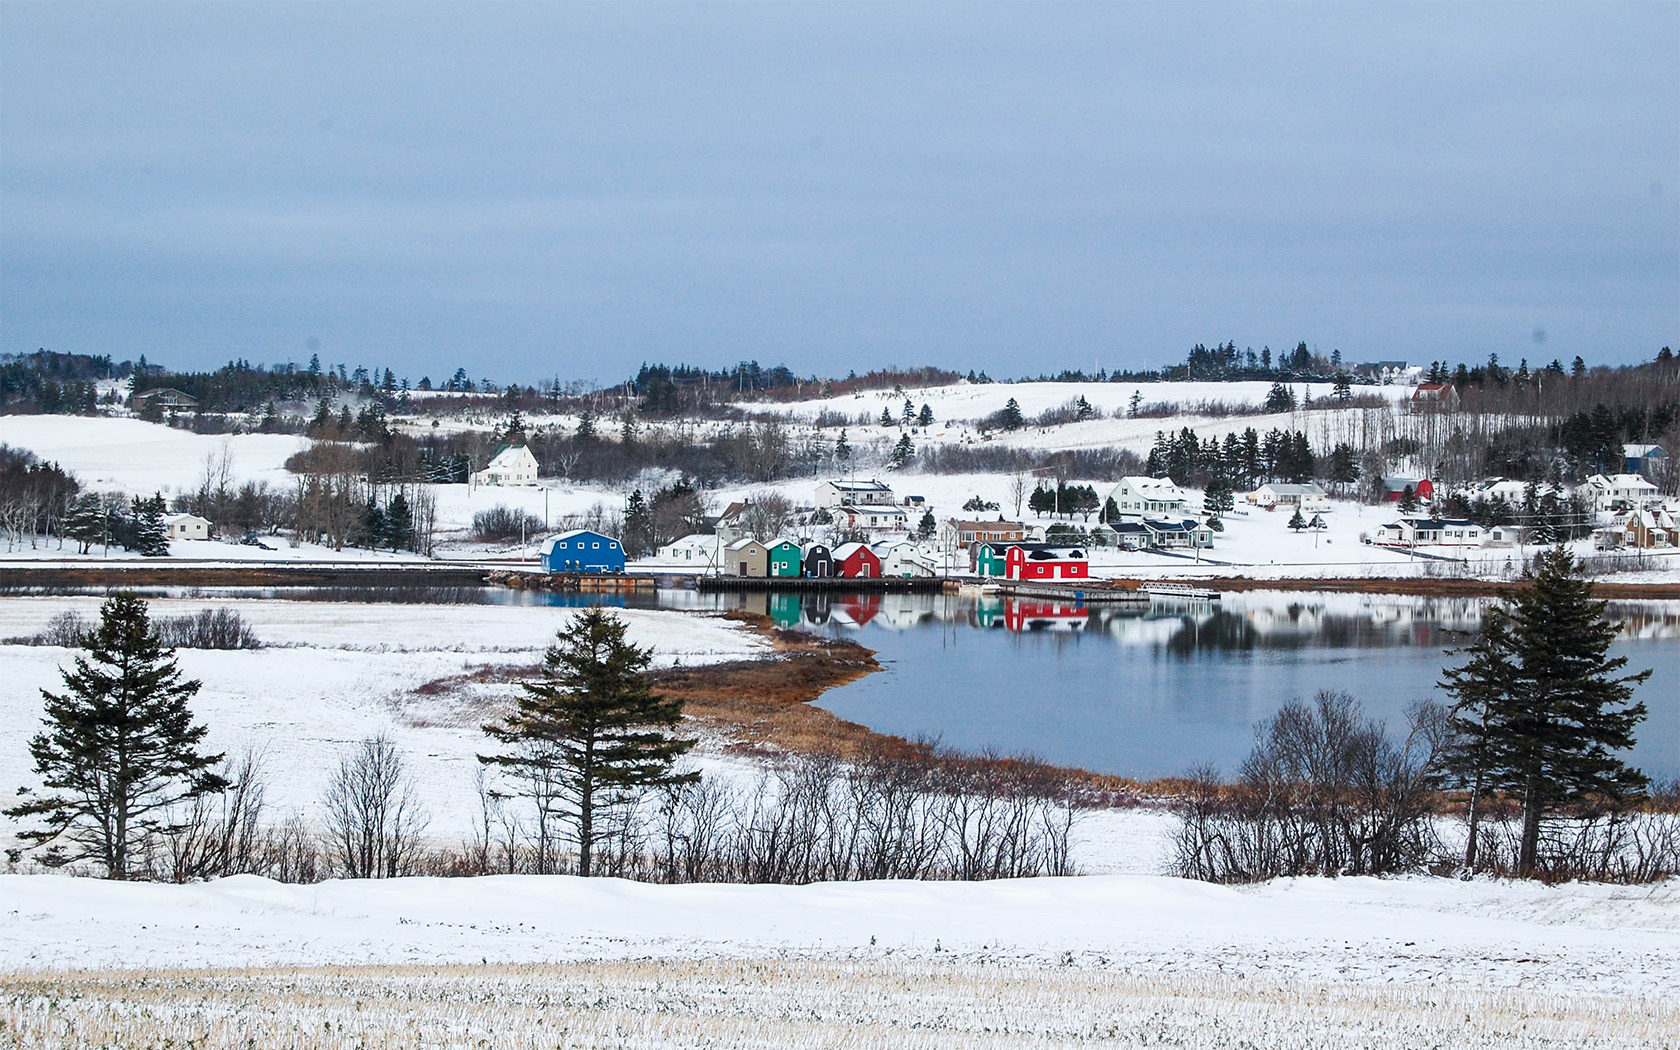 French River, PEI - Maureen Blake - PEI Mutual Calendar